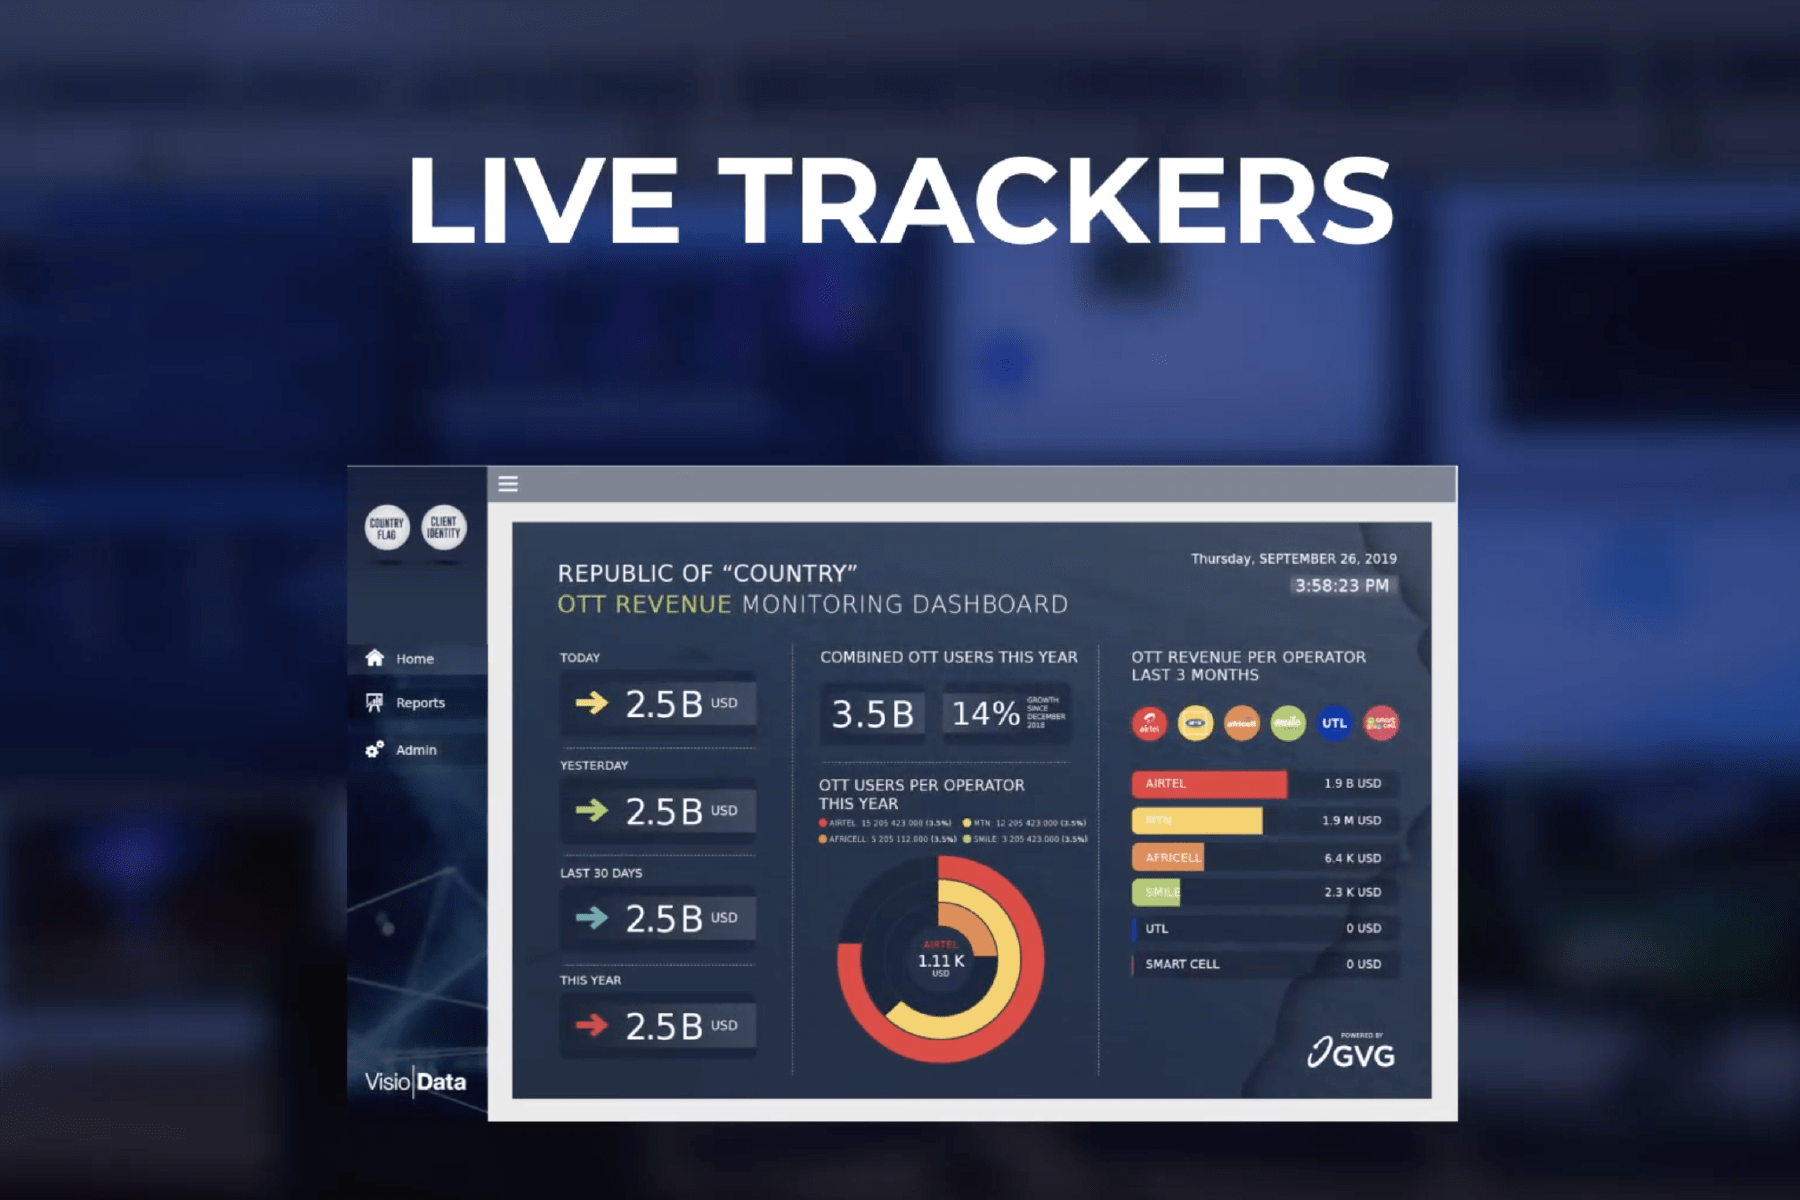 GVG's Live Trackers